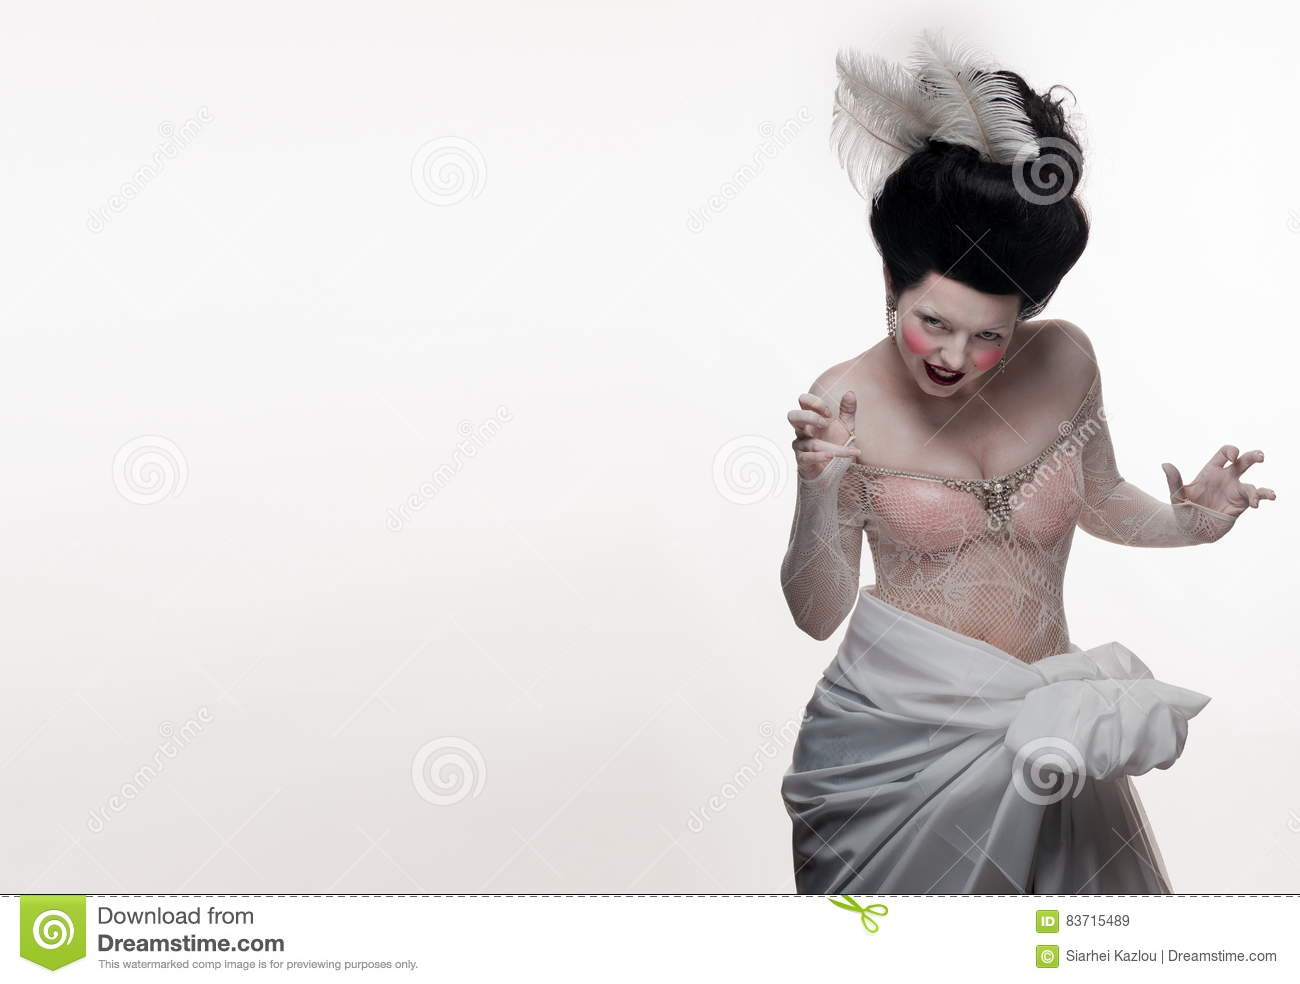 Emotional Brunette Actress Lady With White Feathers Stock Photo